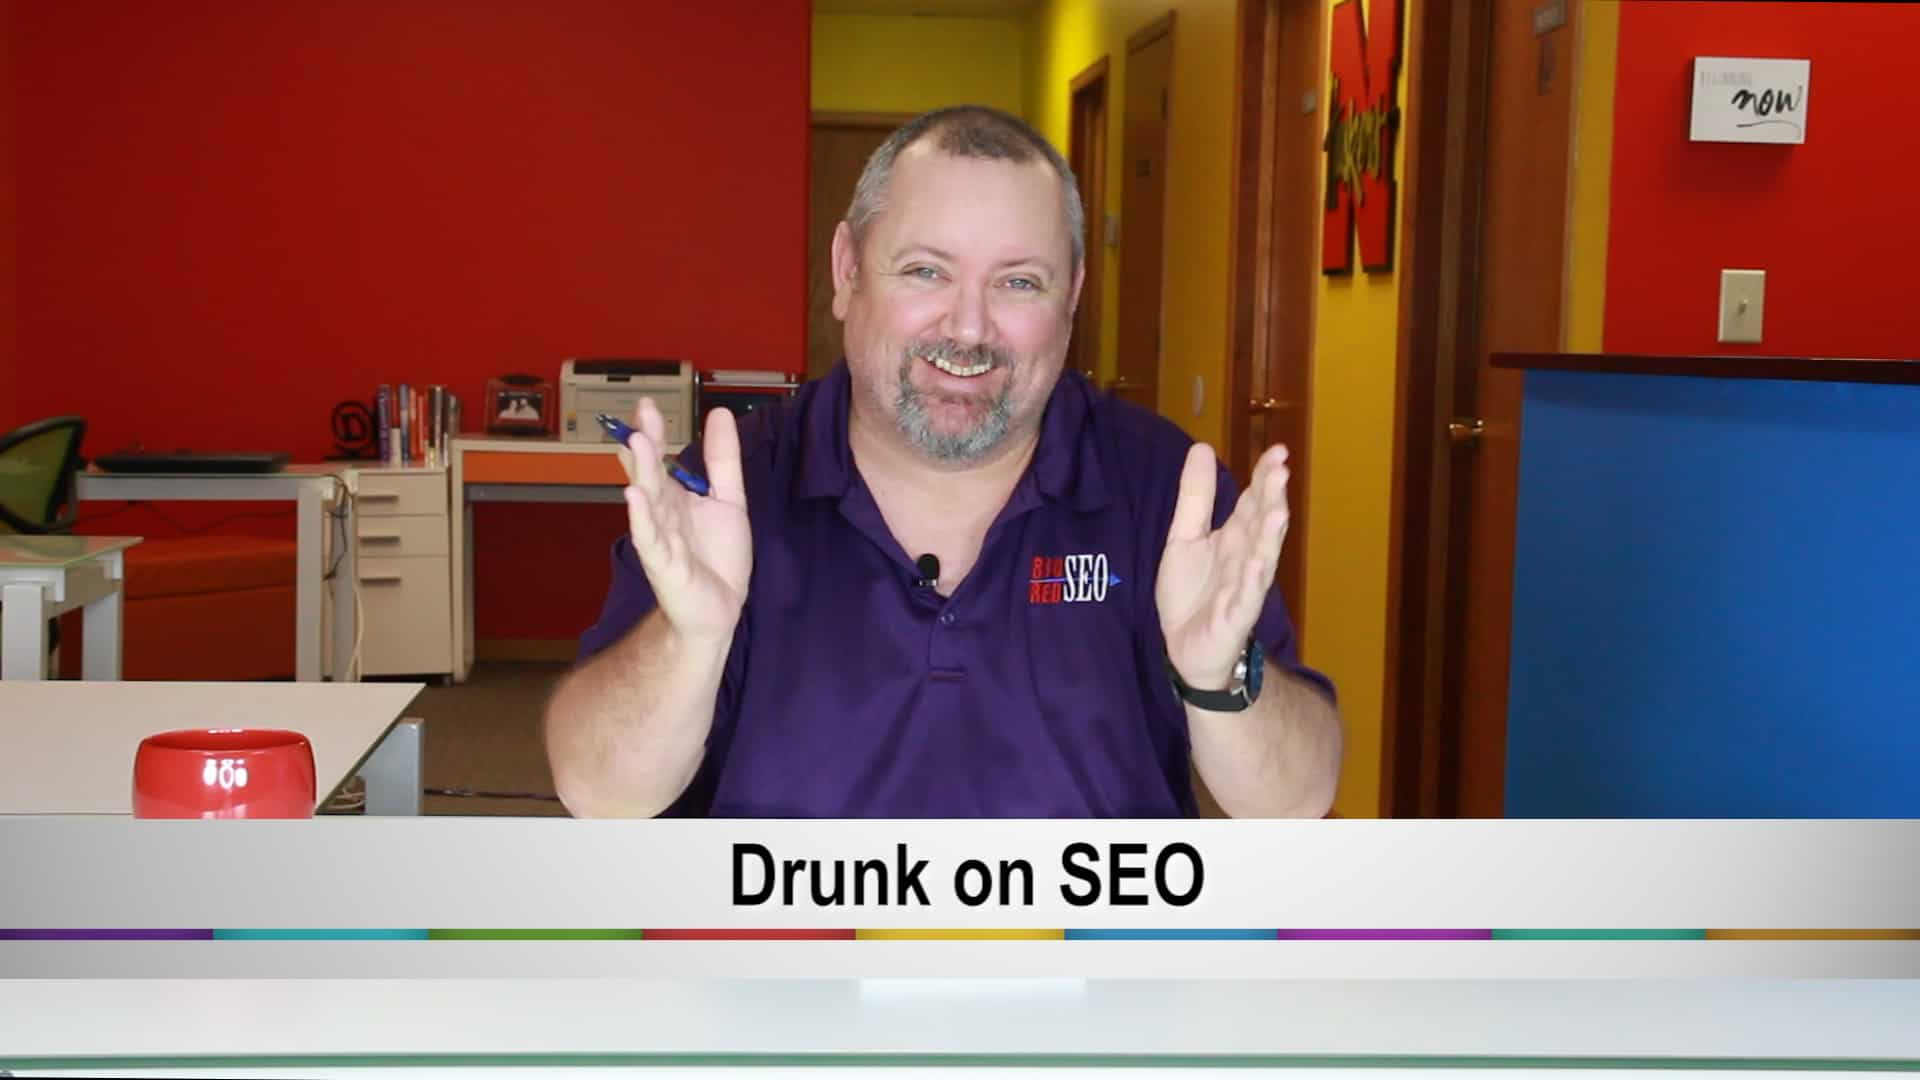 Drunk On SEO - The Comparison - Omaha SEO and Web Design - Big Red SEO